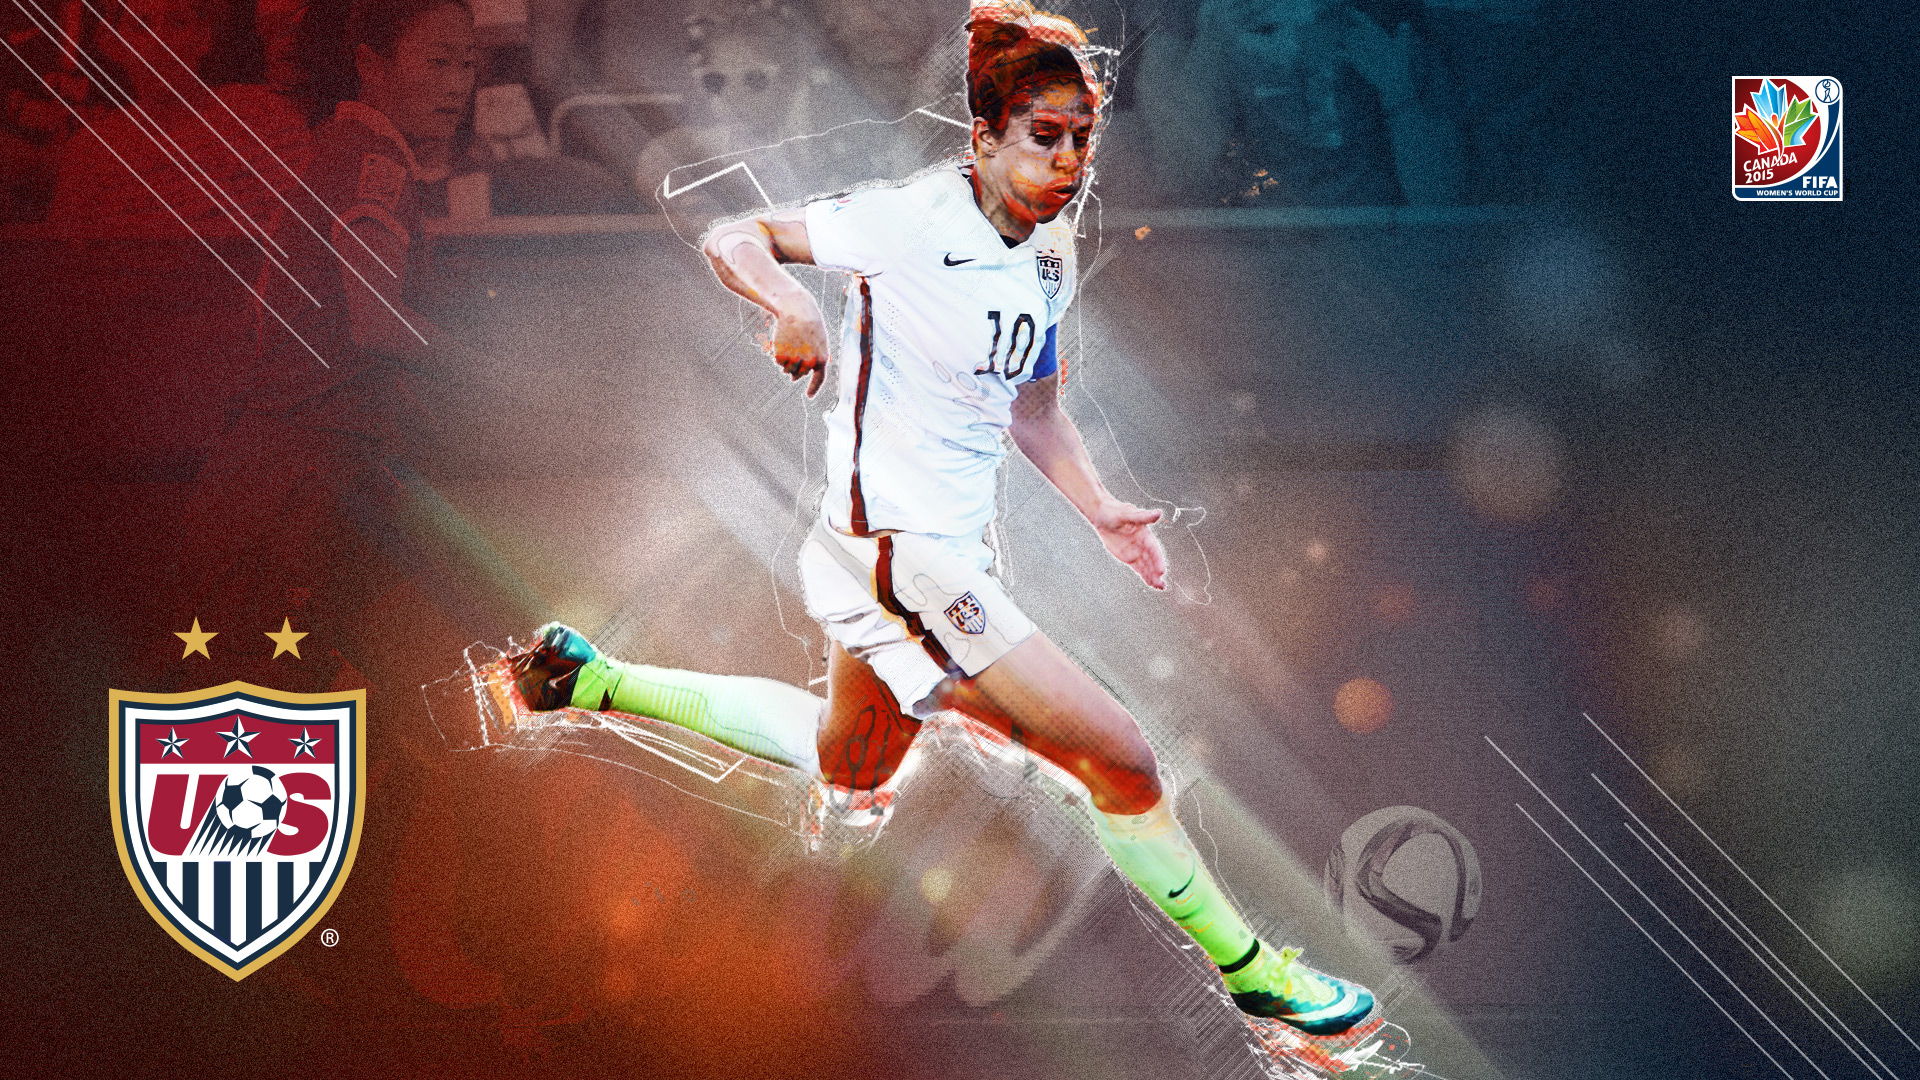 Carli Lloyd's beautiful cross to Kelley O'Hara solidifies USA's 2-0 victory over Germany